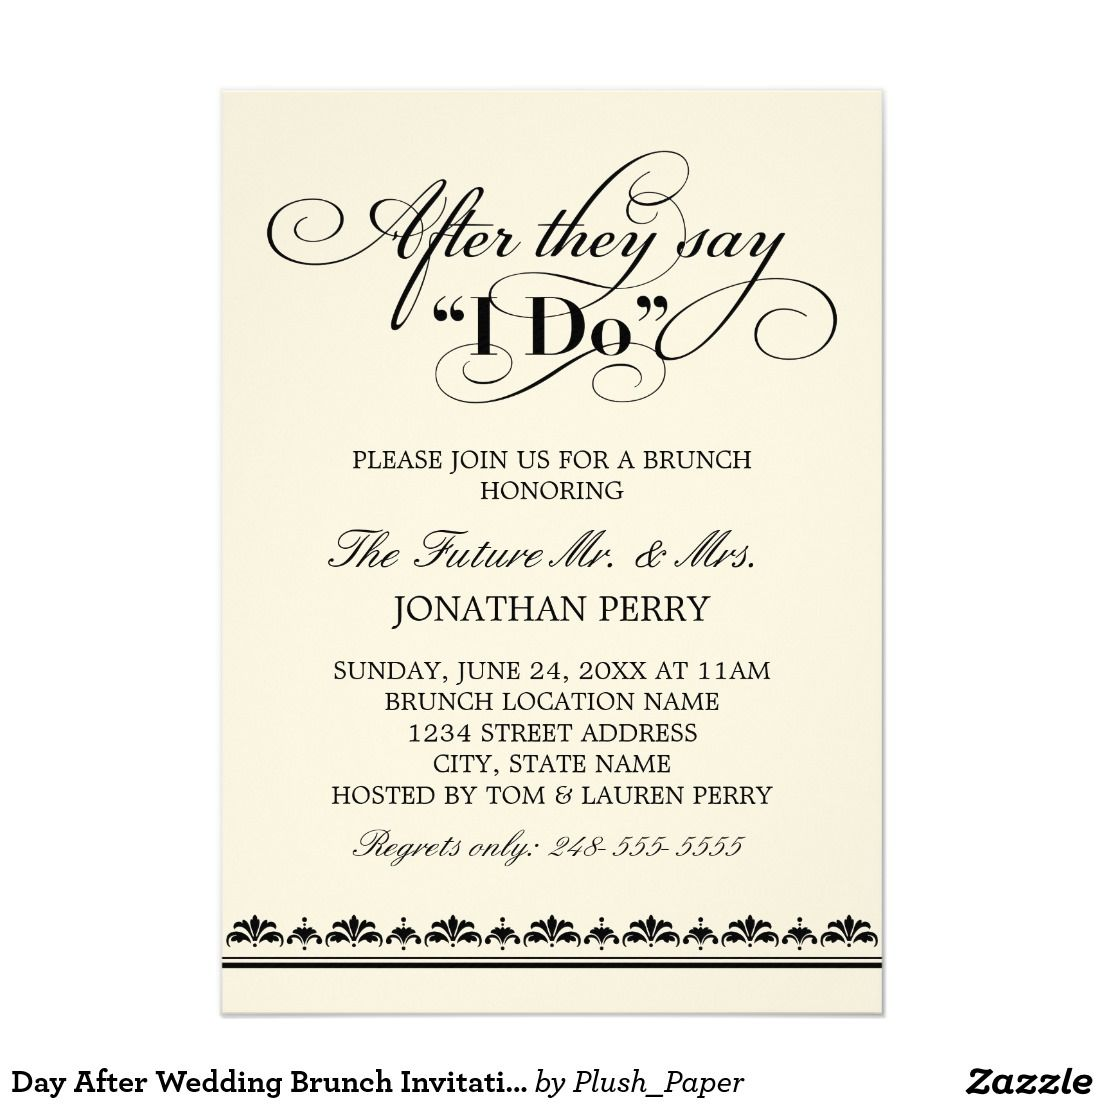 day after wedding brunch invitation wedding vows matt brunch